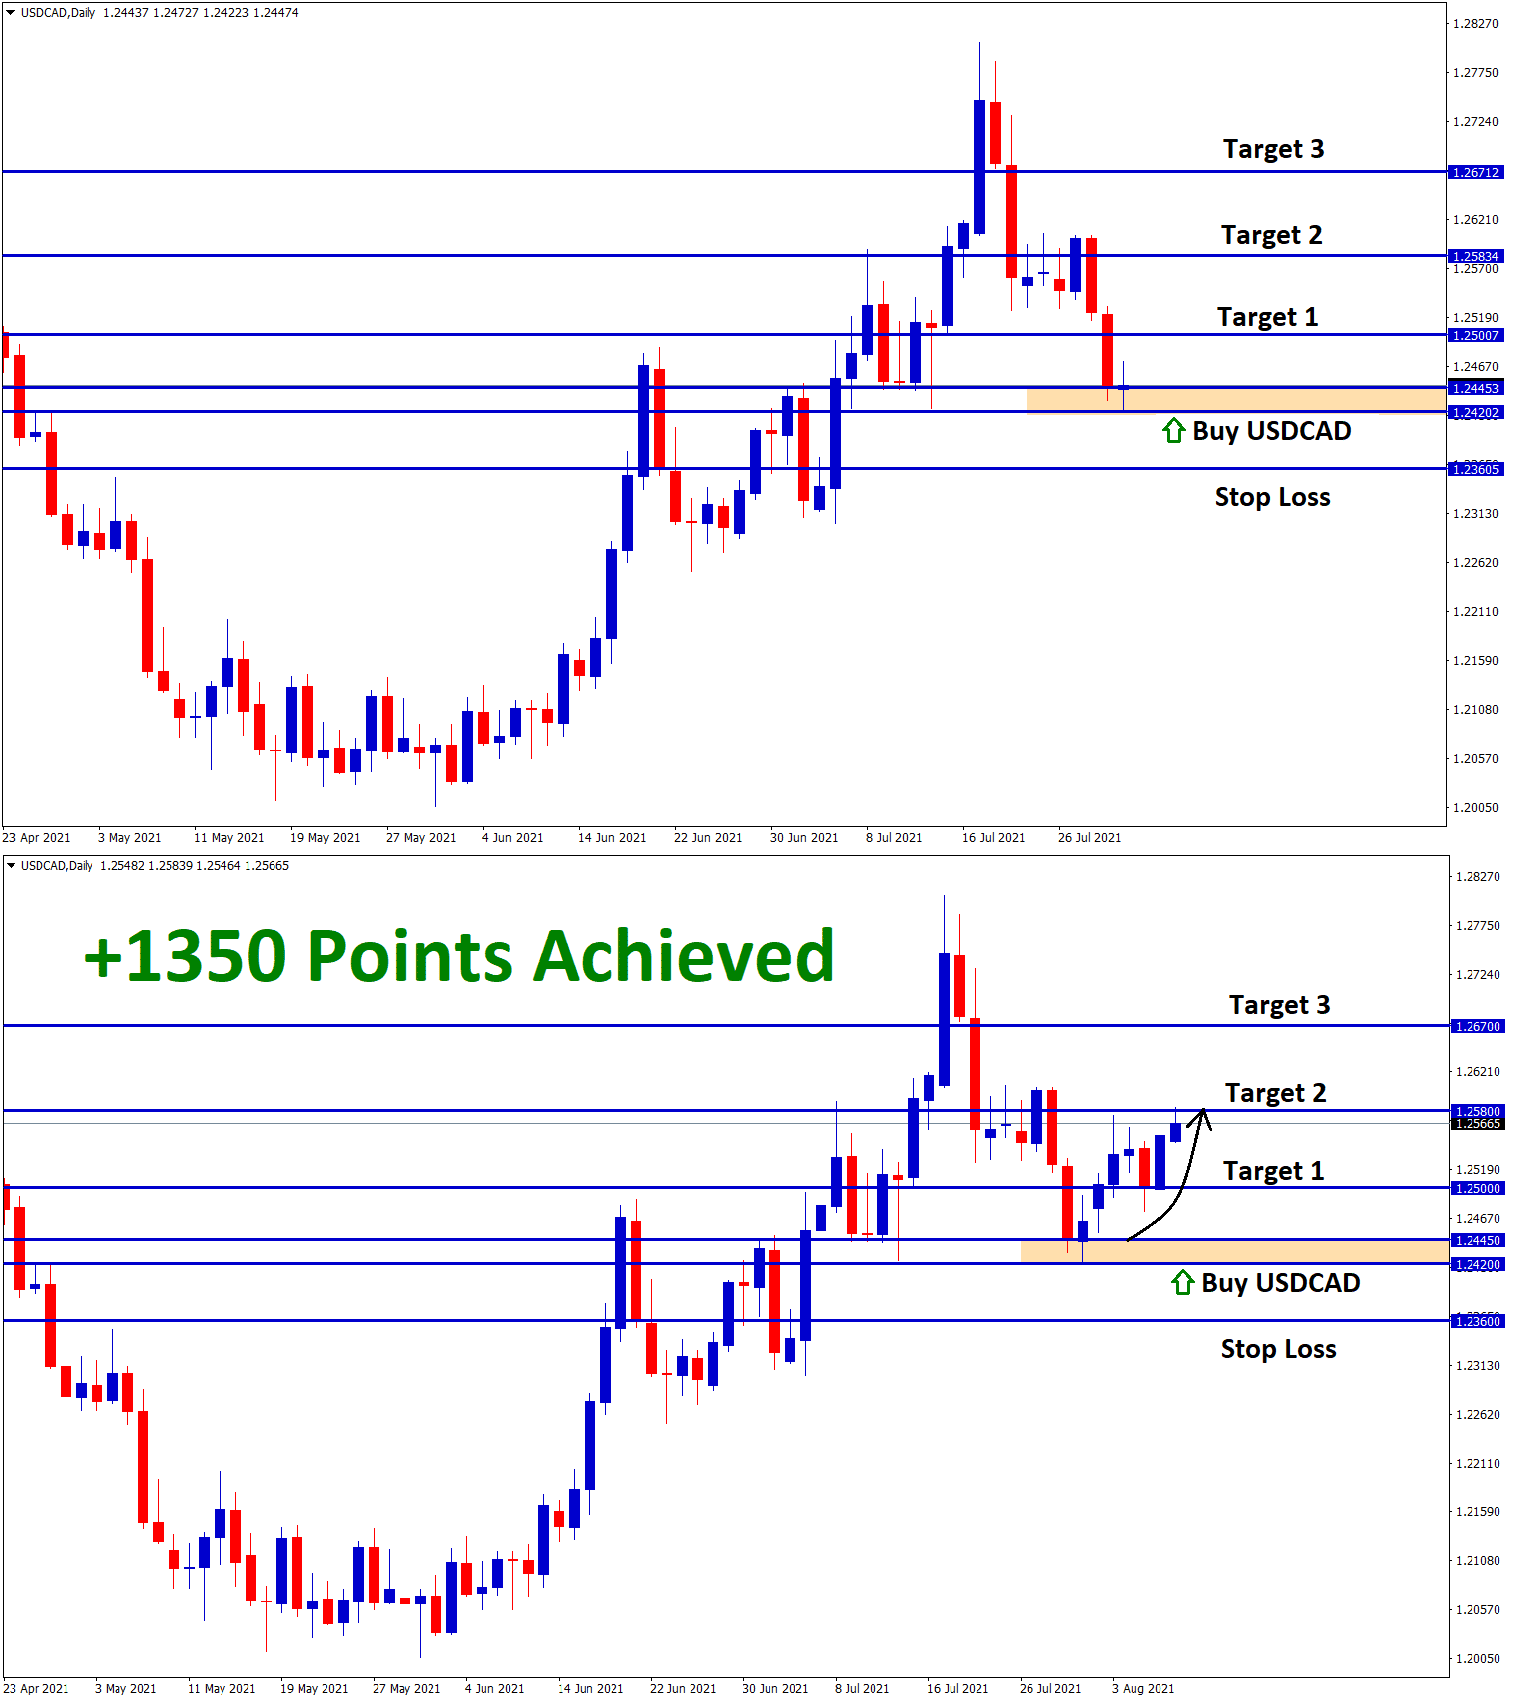 1350 Points achieved in USDCAD T2